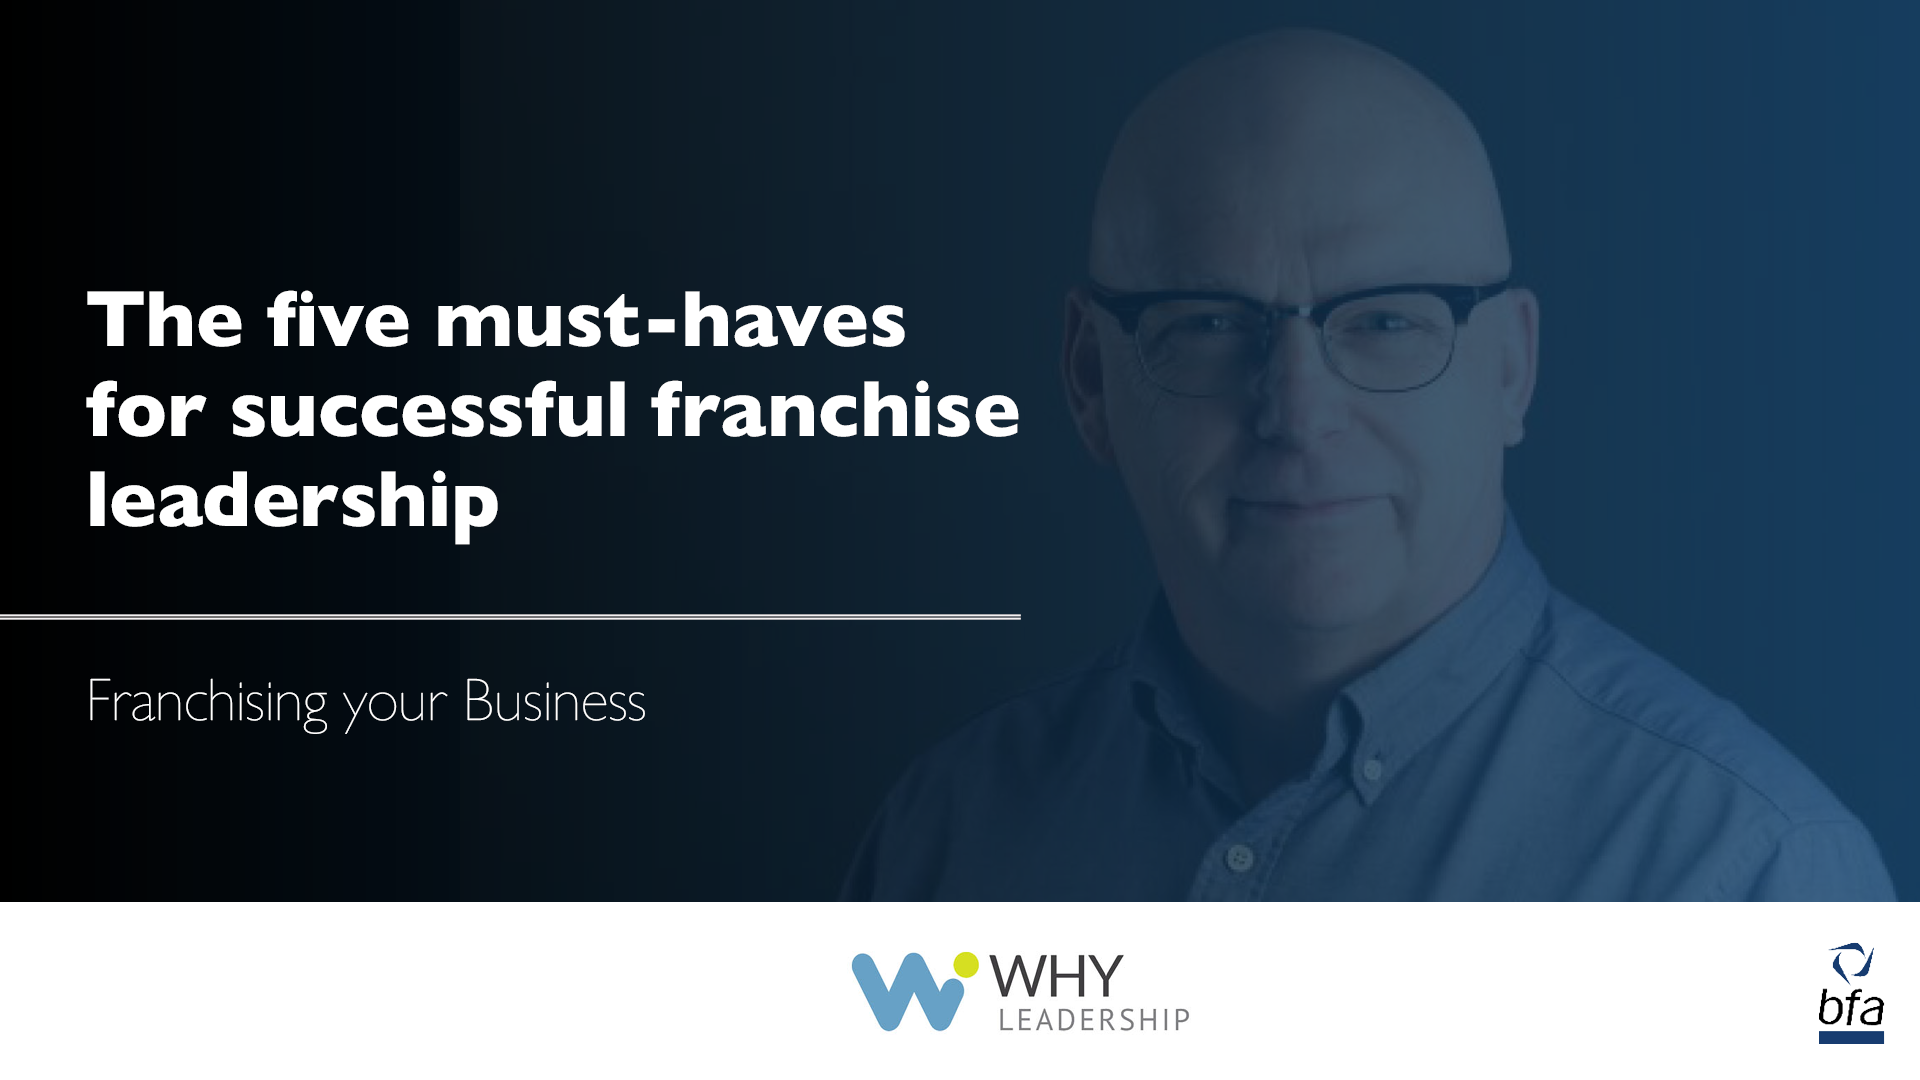 The five must-haves for successful franchise leadership